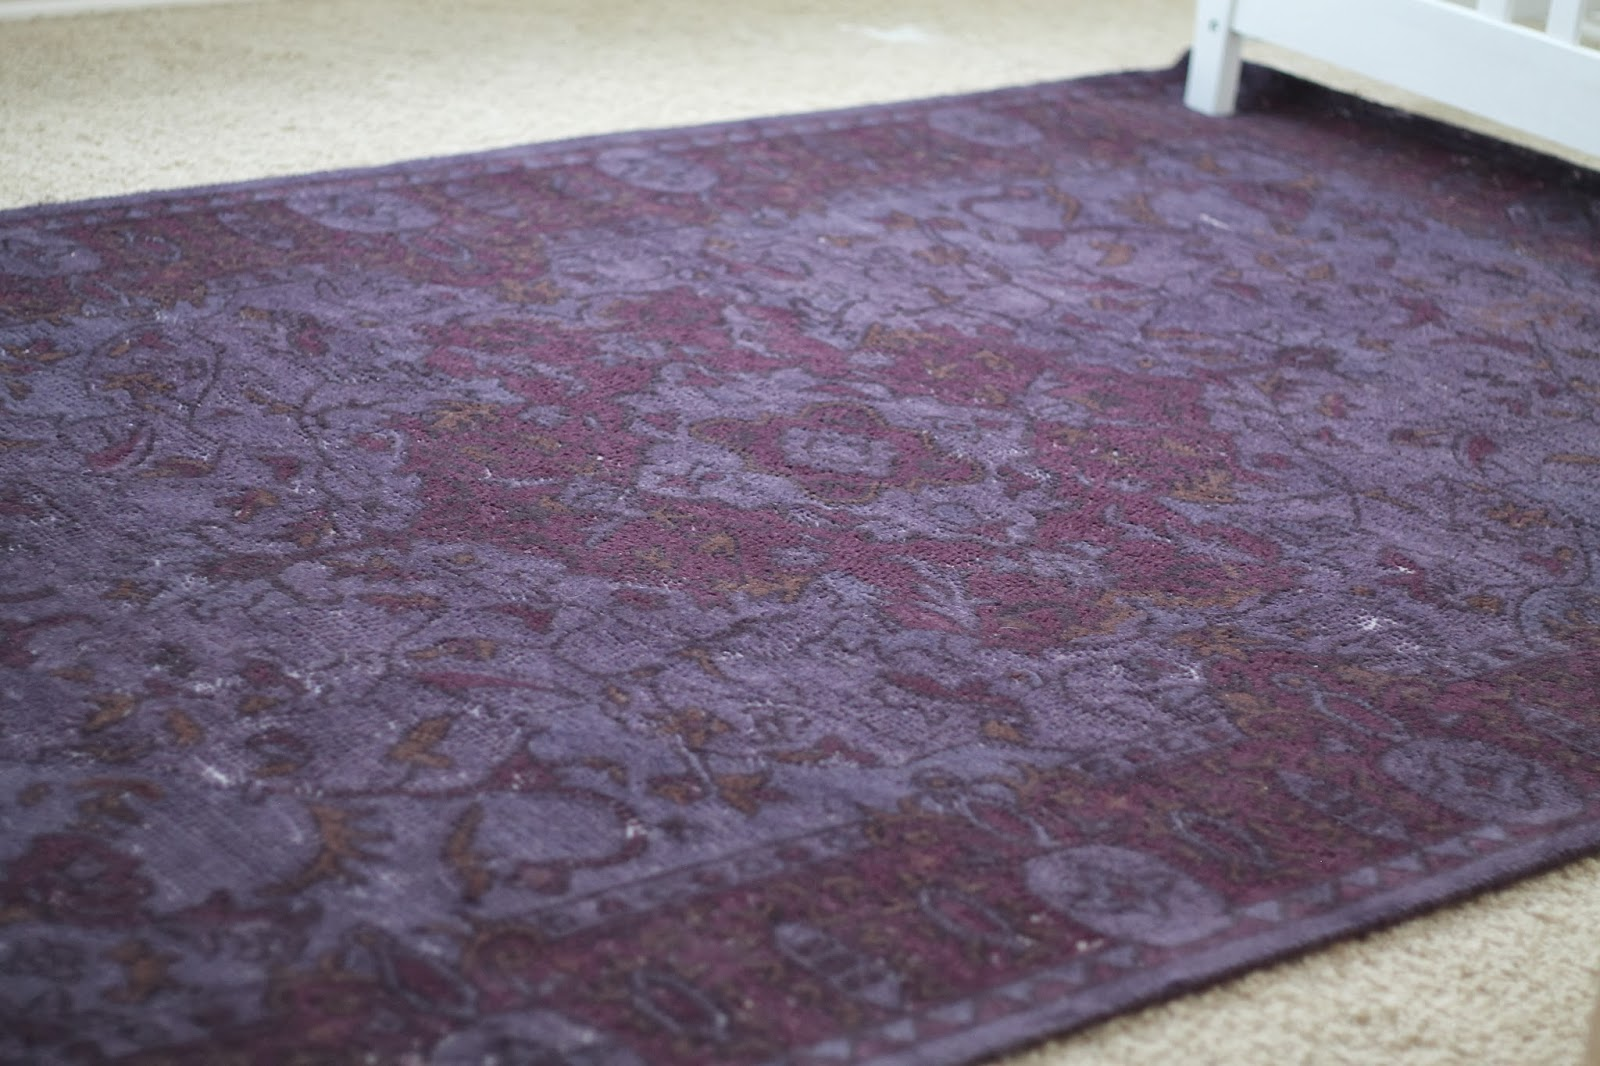 It S The Bursa Wool Rug In Merlot Curly Sold Out From West Elm We Had Actually Been Going Back And Forth Getting 9 12 Navy One For Our Living